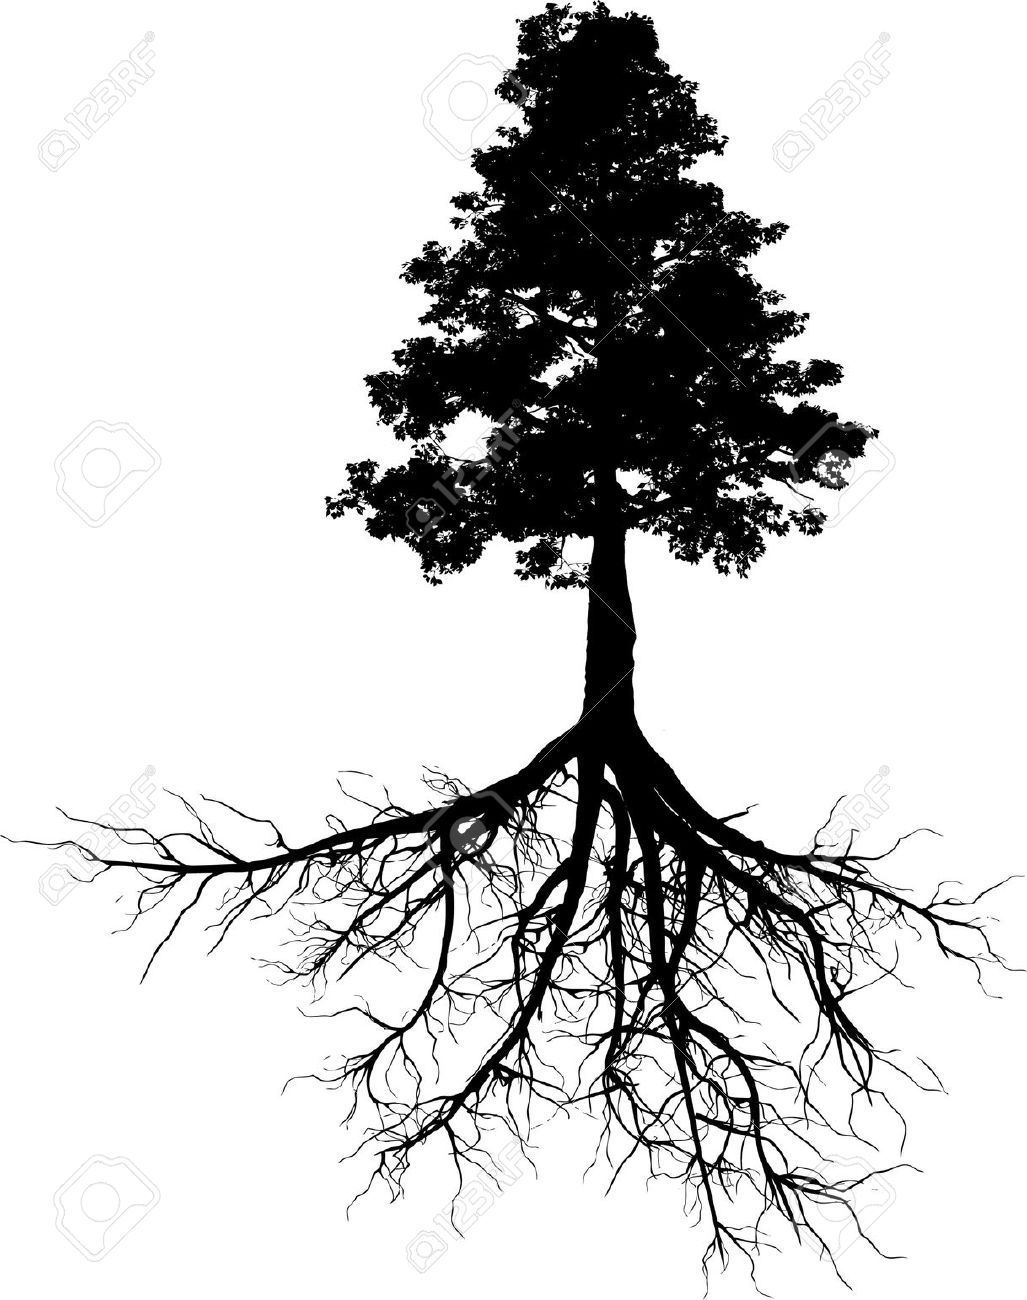 tree outline with roots.